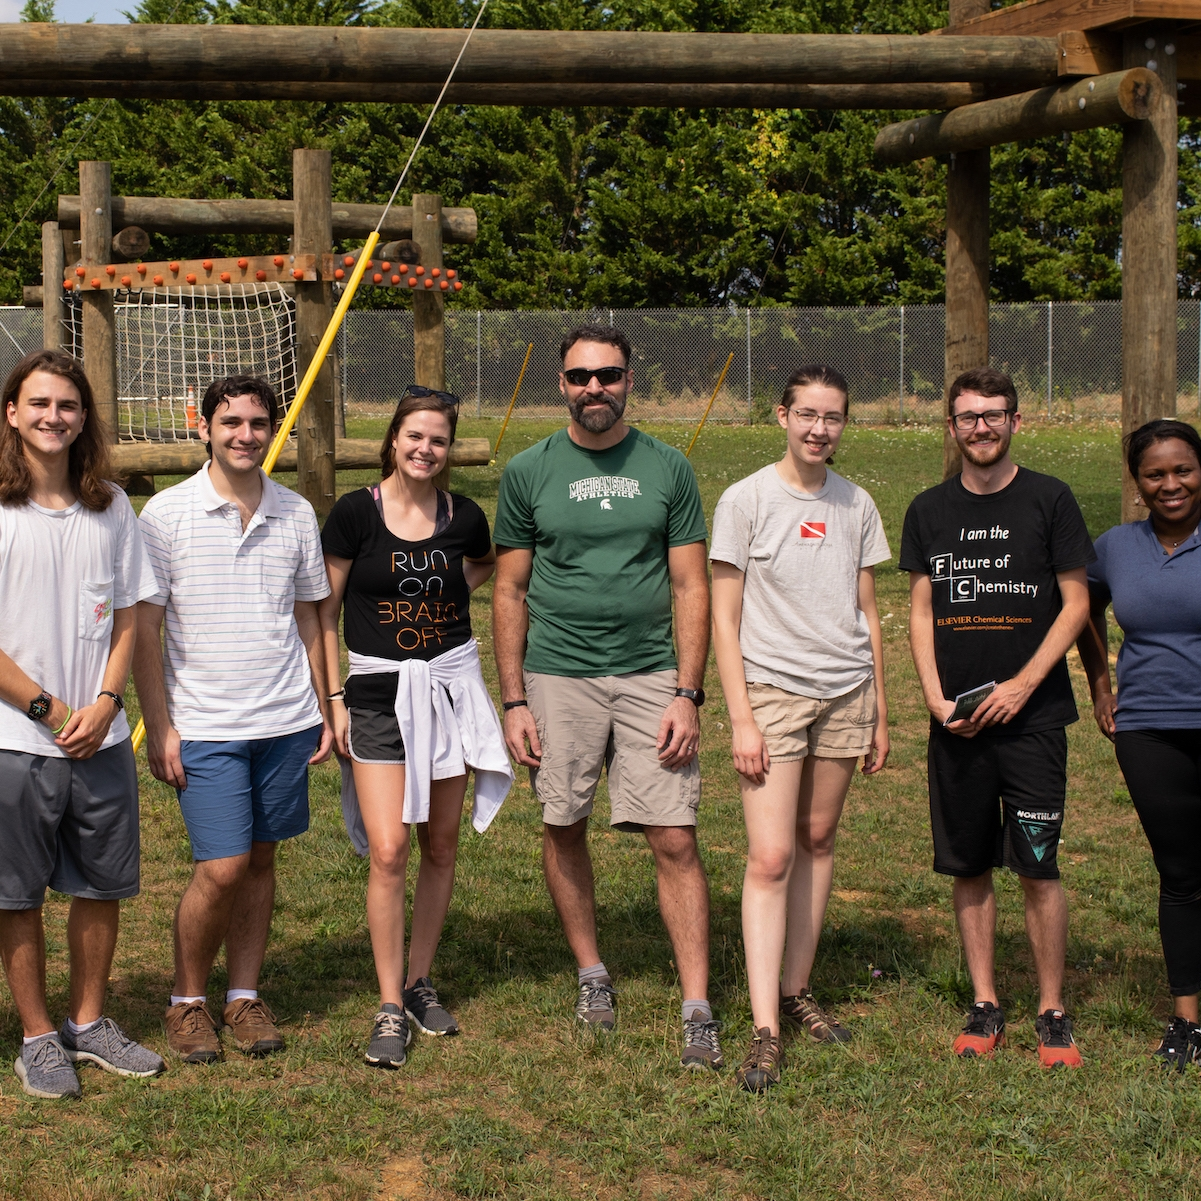 Six new macro students and two current macro students stand in front of the venture out ropes course at Virginia Tech.